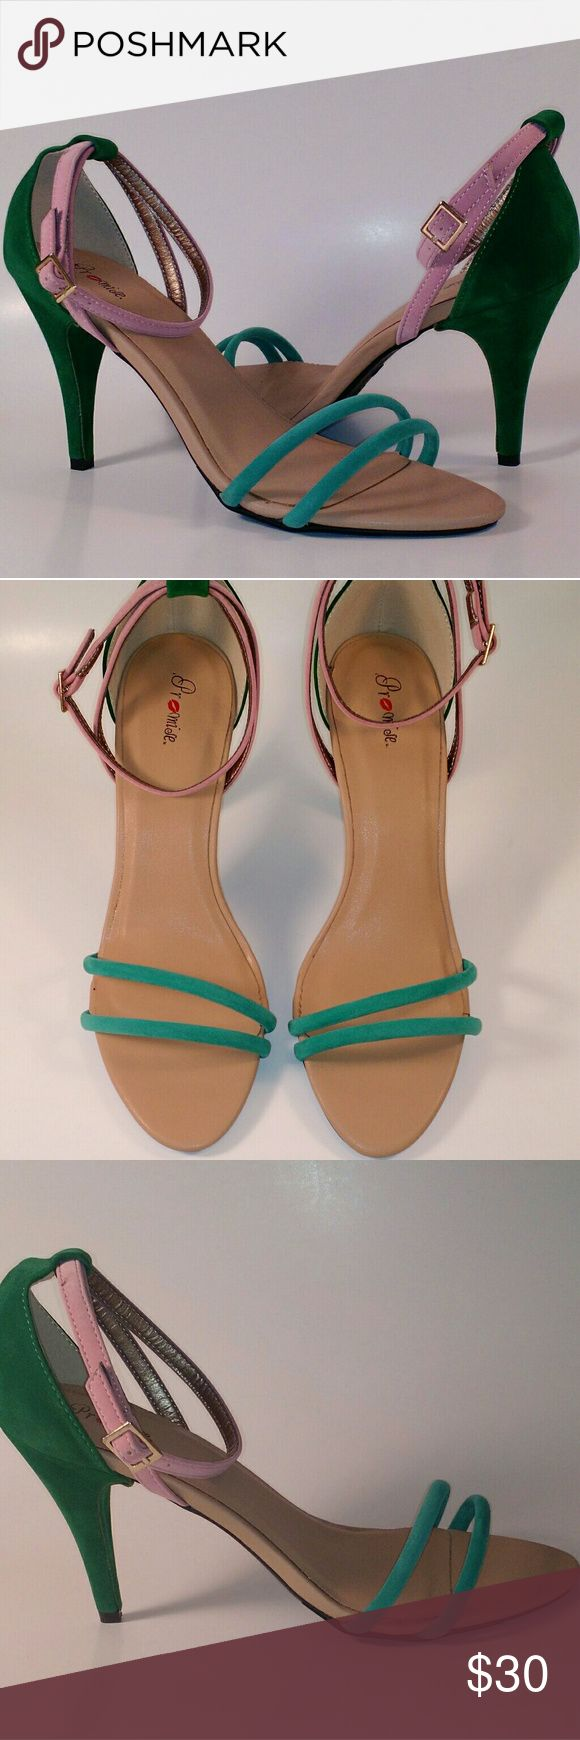 MULTI COLOR STRAPPY HEELS Nubuck material. Pink/green/turquoise. Approximately 3 1/2 inch heel. Shoes Heels